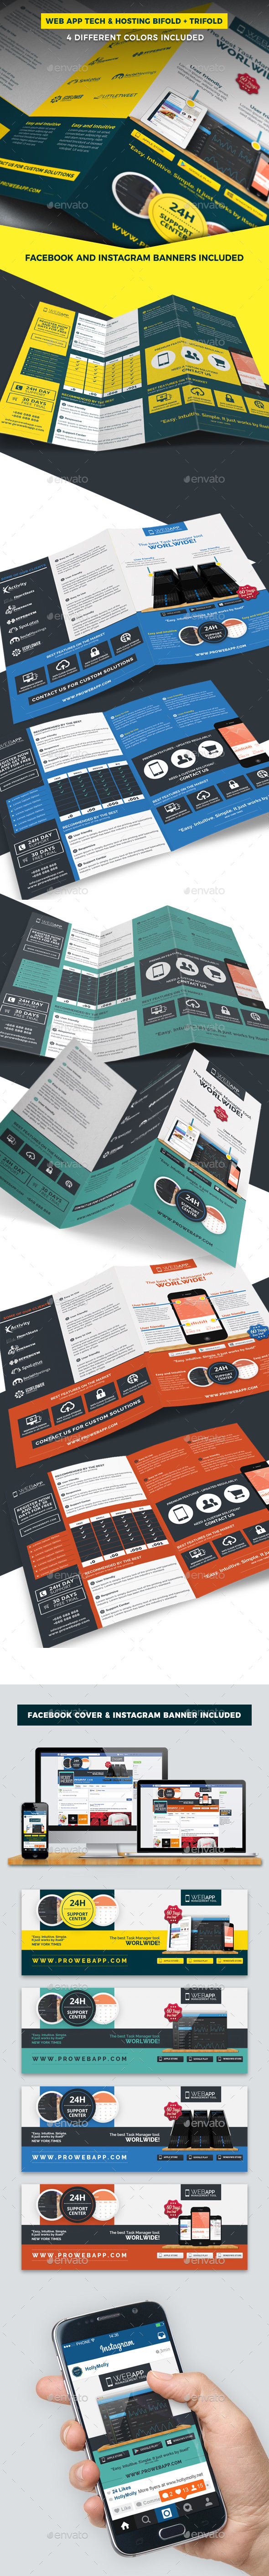 Web App Tech and Hosting Brochure Templates (Bifold + Trifold) - Brochures Print Templates